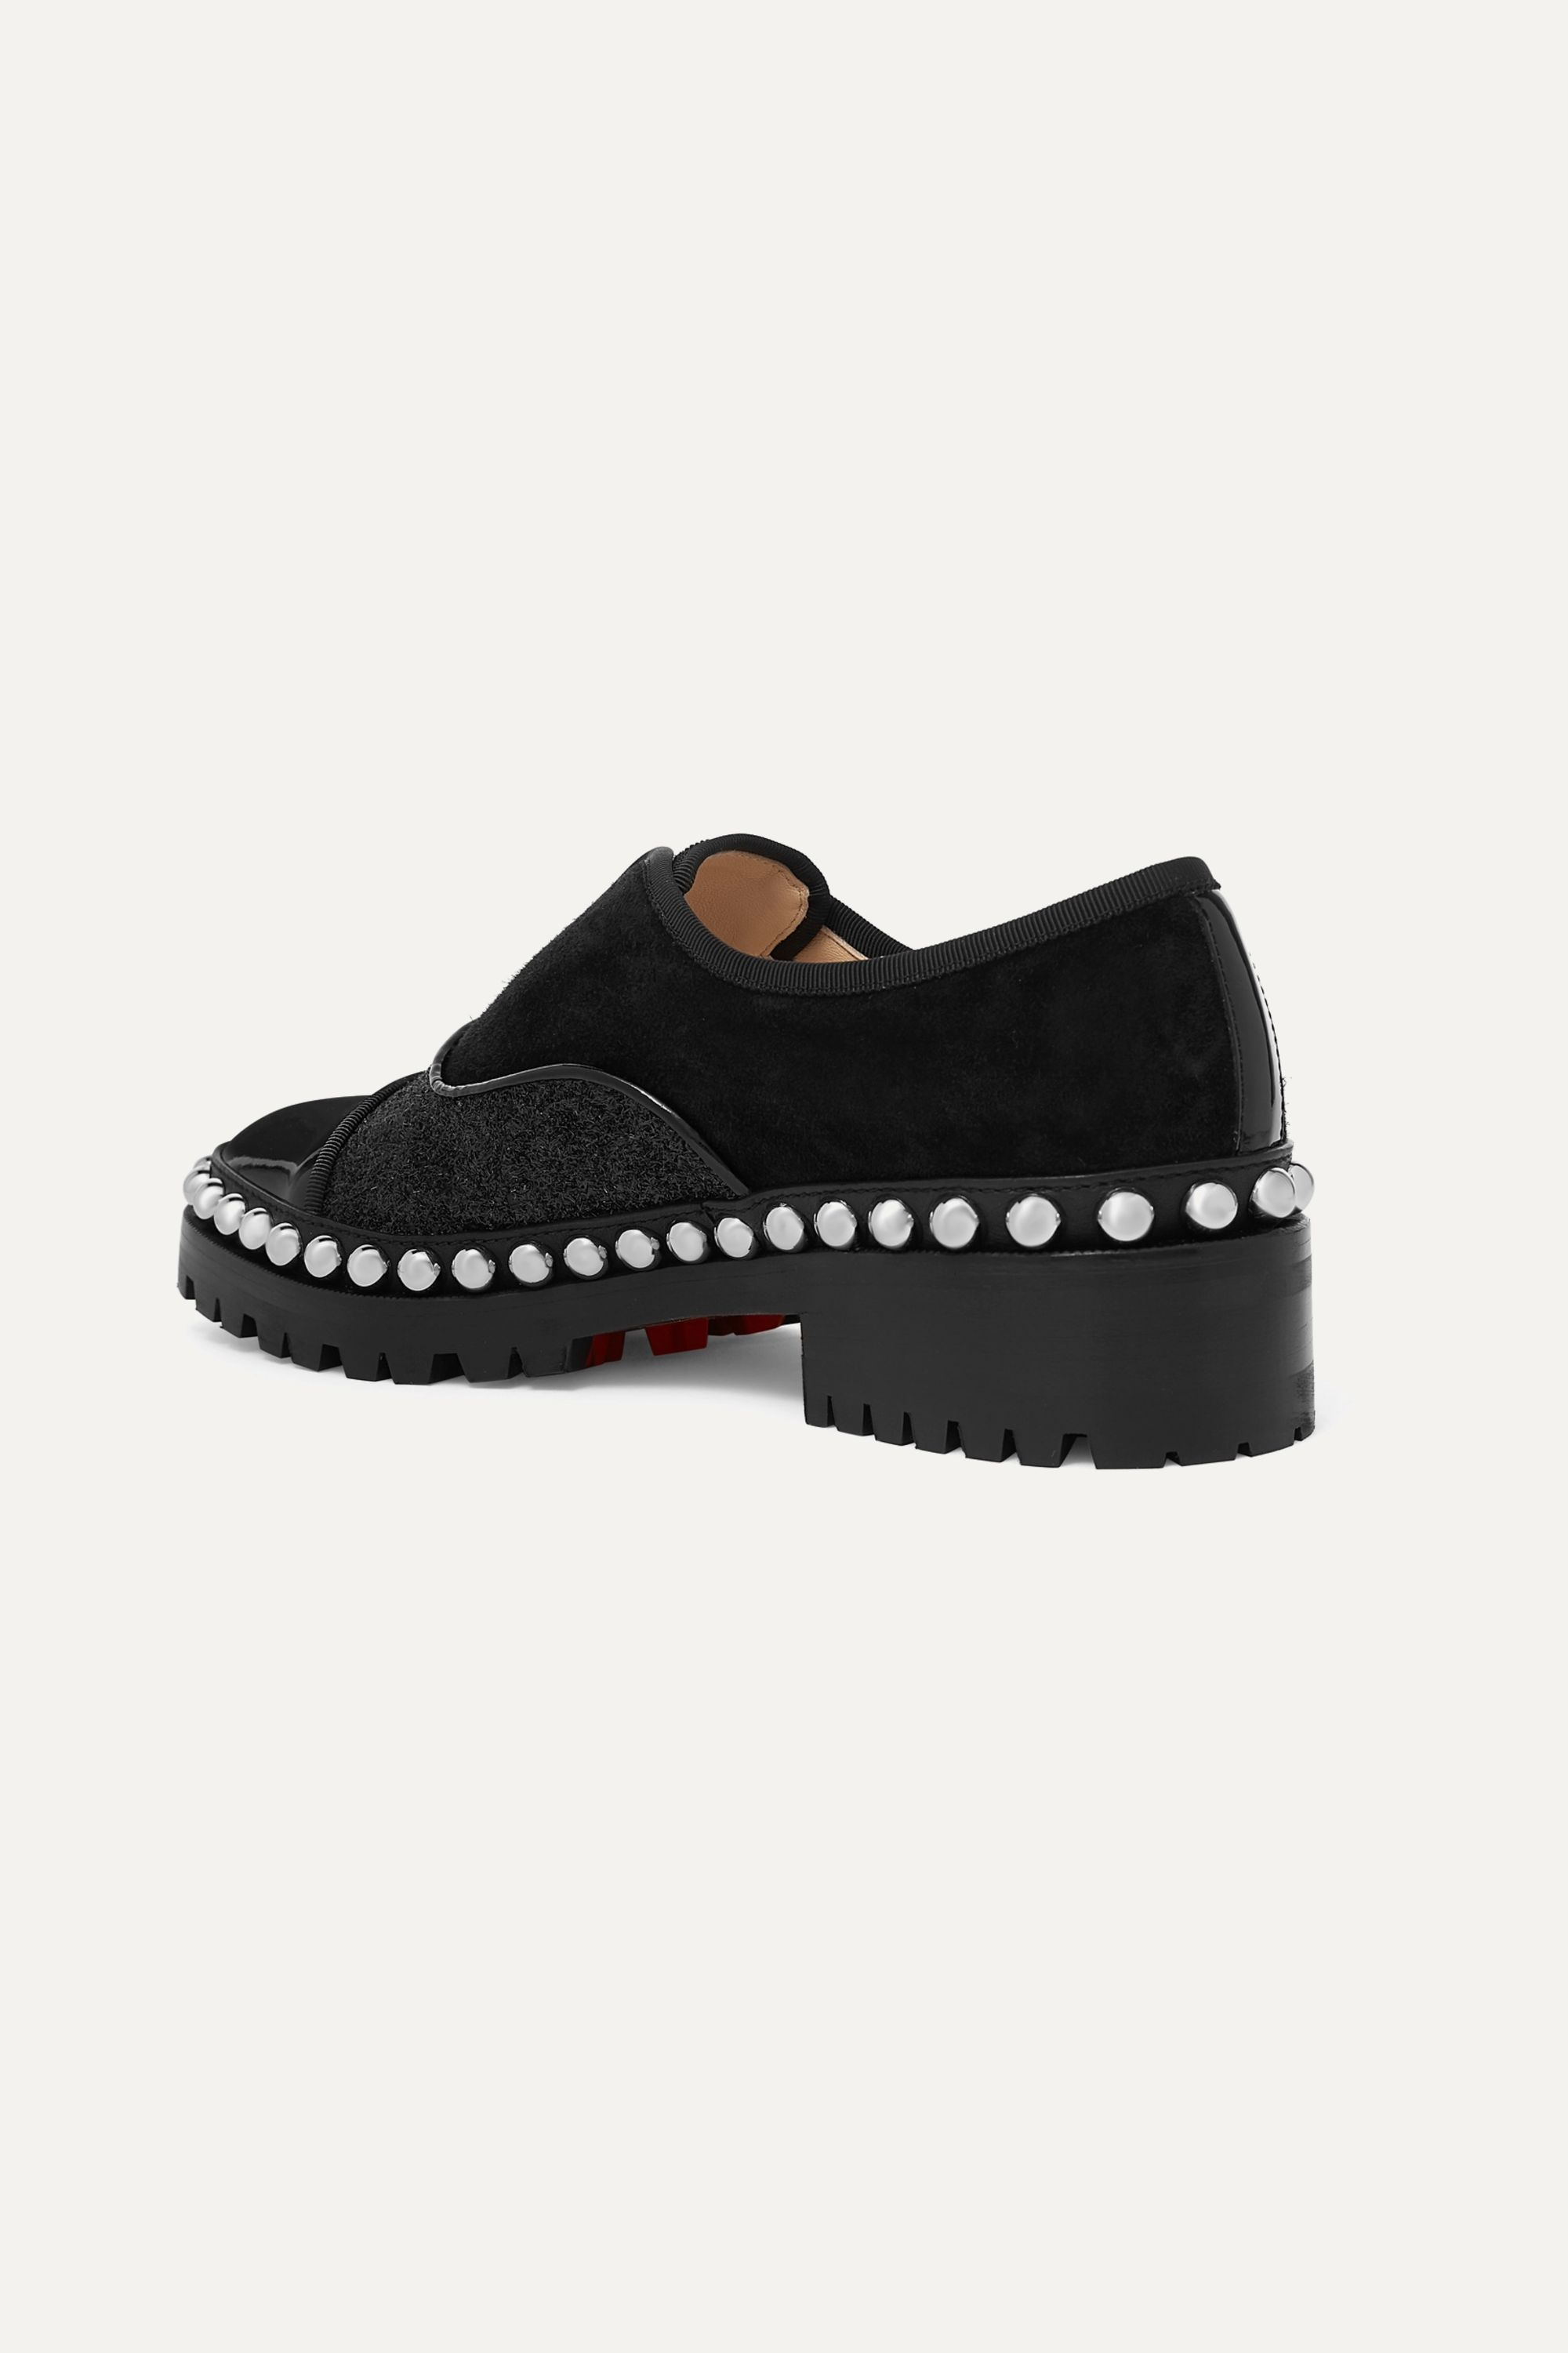 Christian Louboutin Alphacroc 35 studded glittered and patent leather and suede brogues